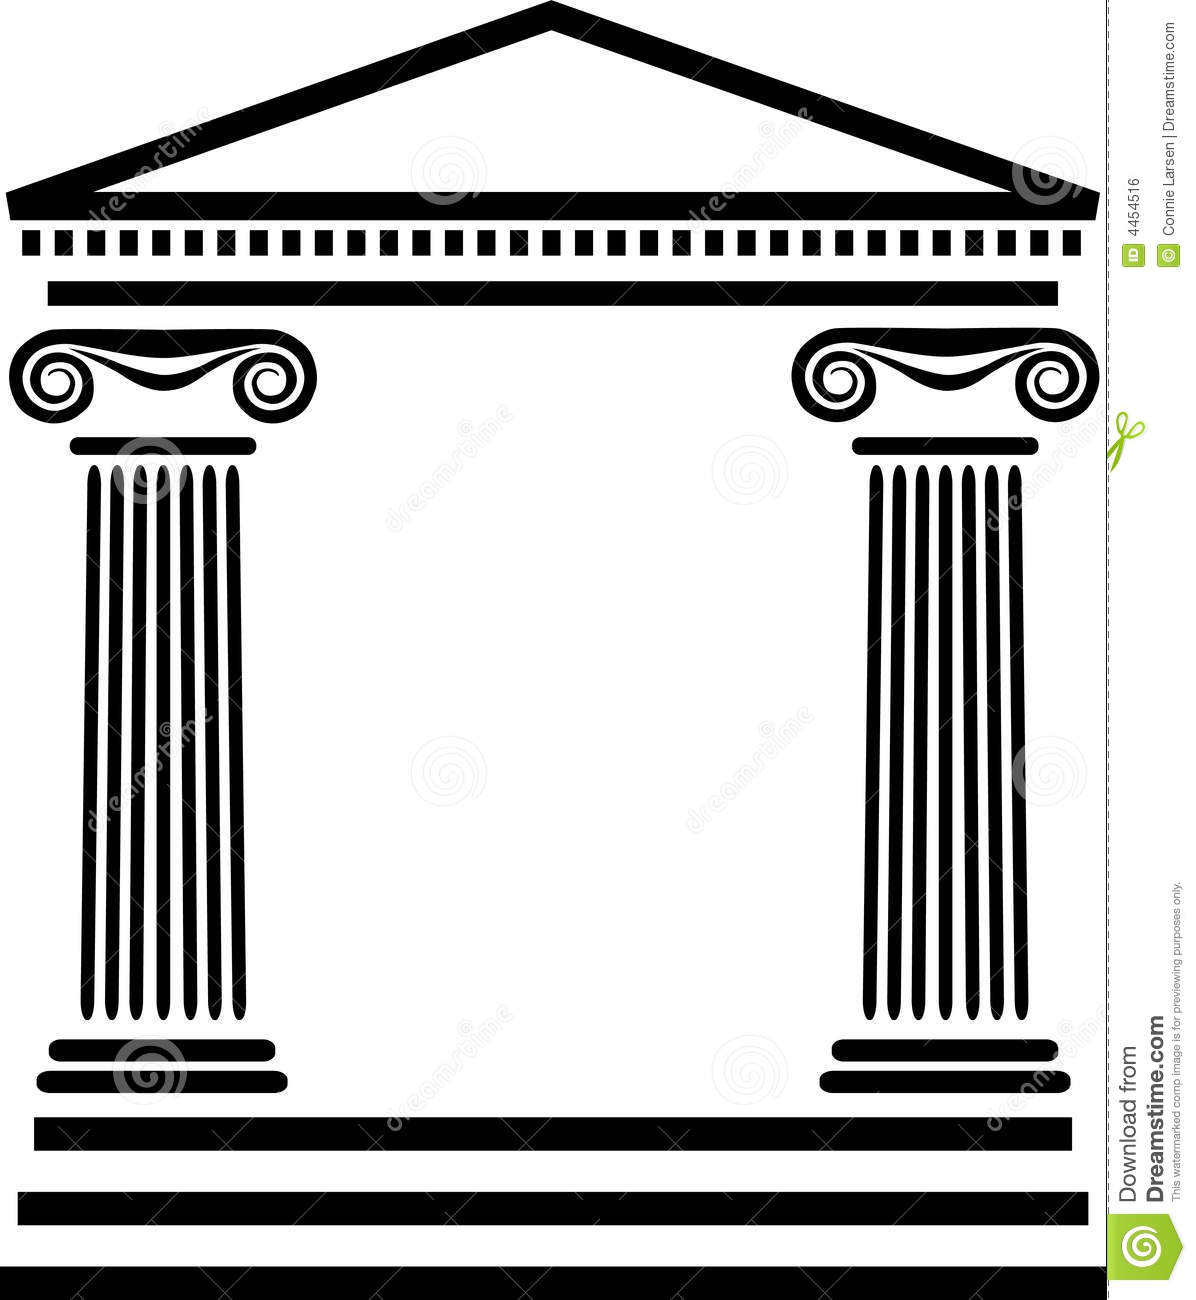 Greek building clipart clipart library stock Greek building clipart - ClipartFest clipart library stock